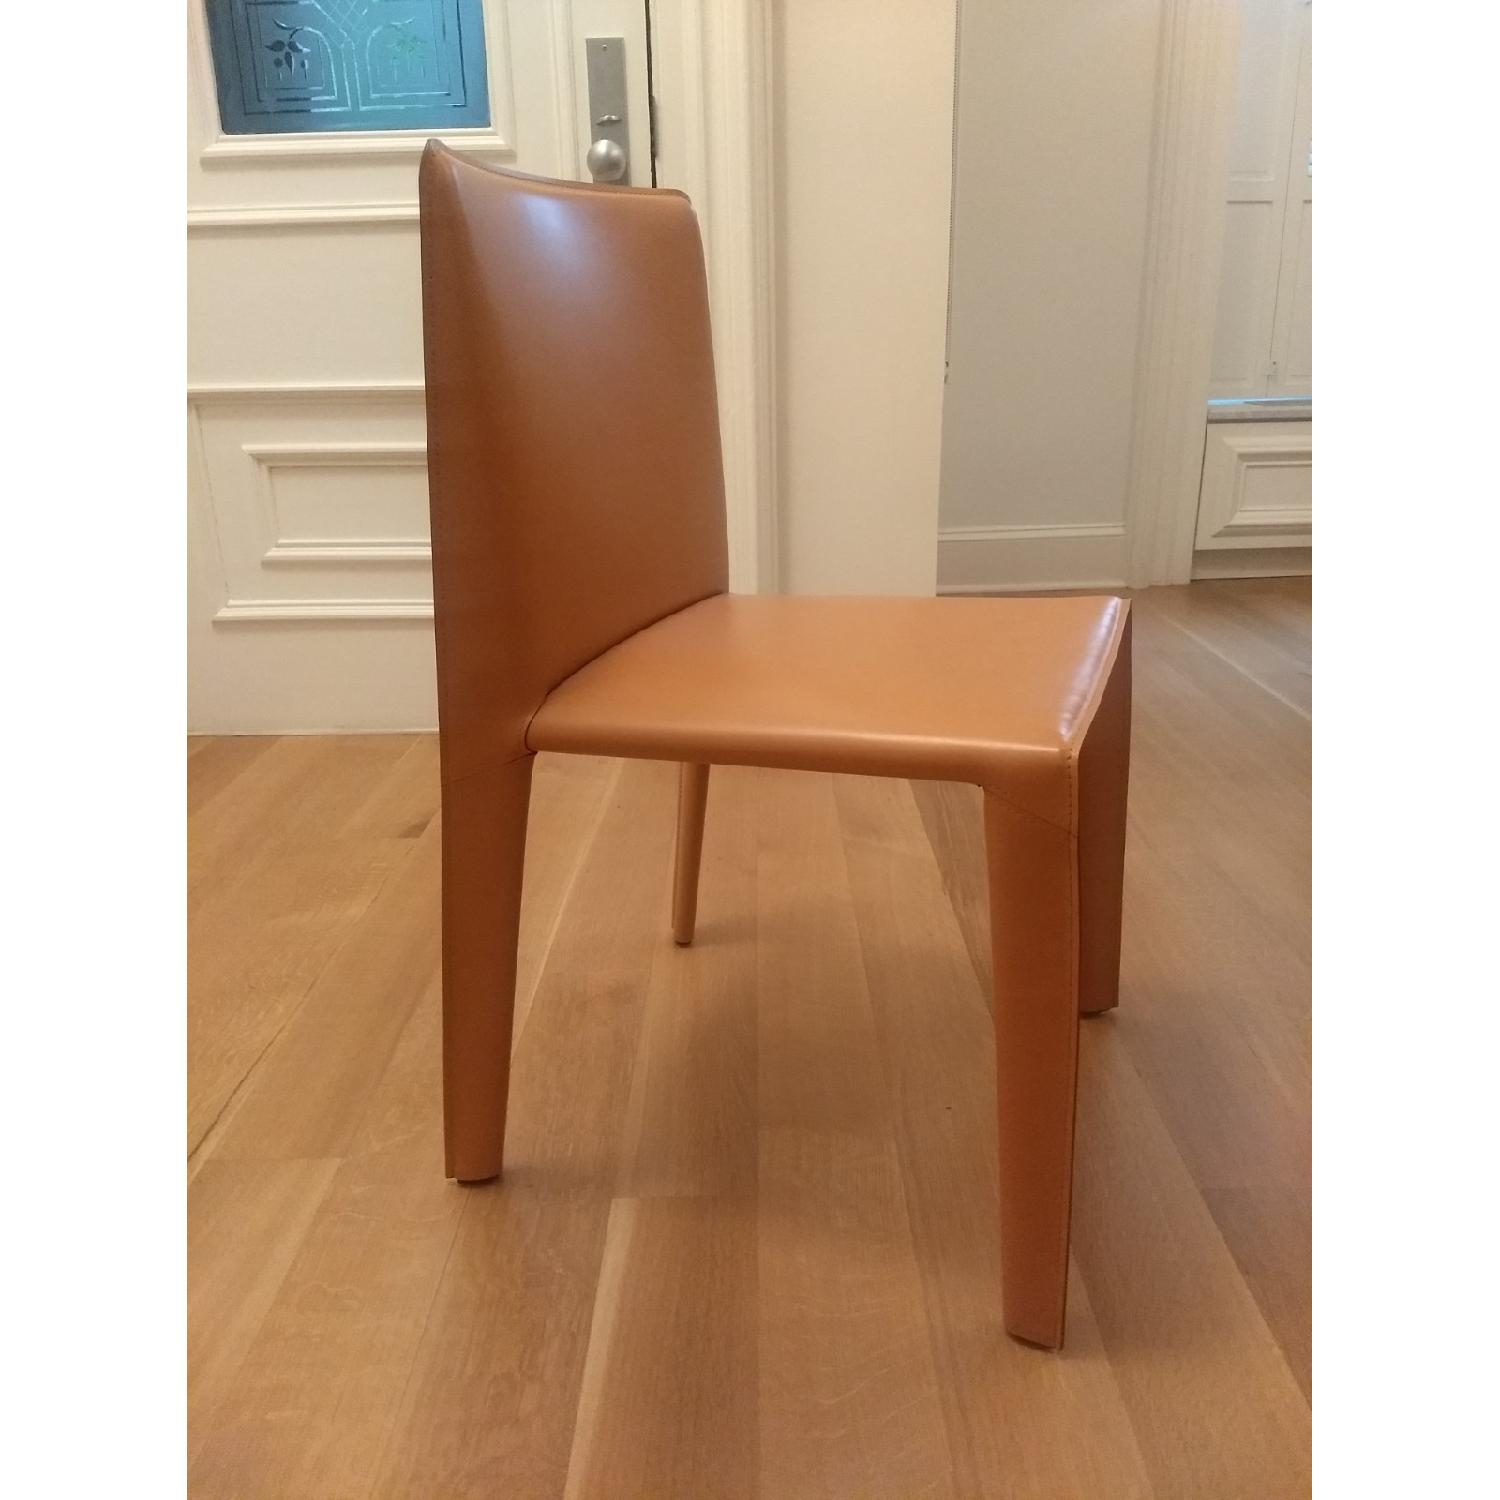 B&B Italia Doyl Dining Chair in Natural Leather-2